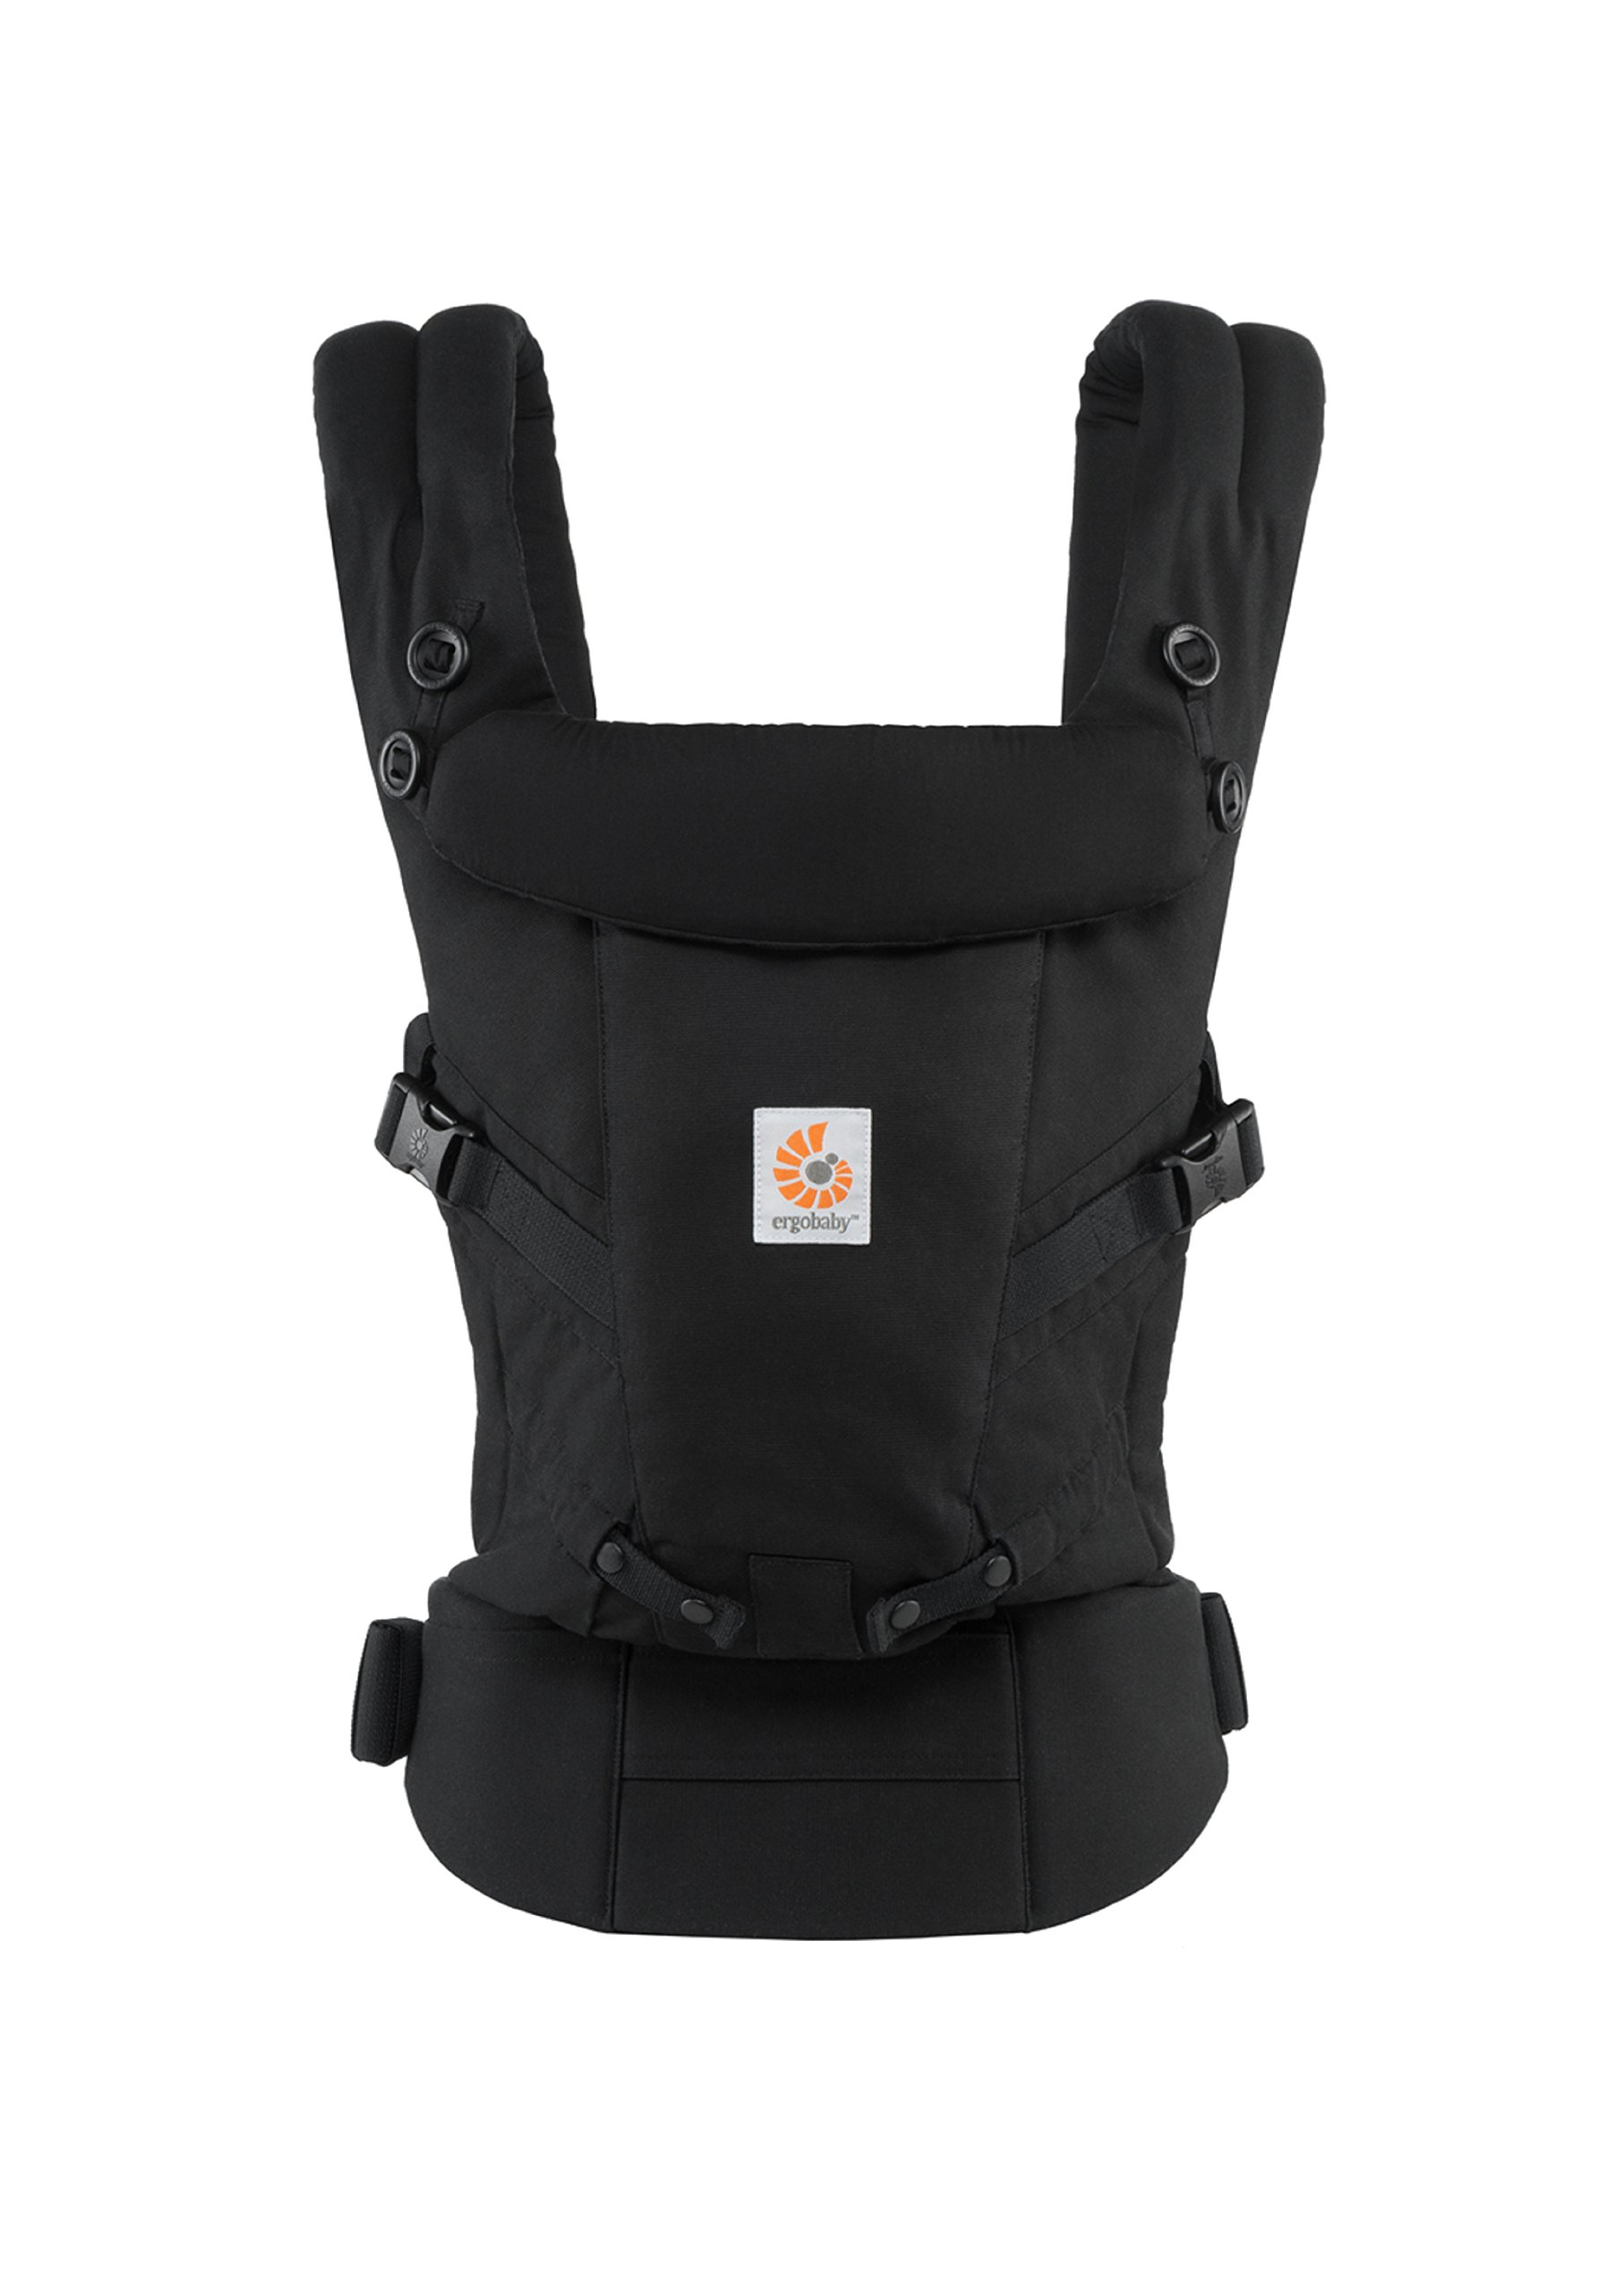 ErgoBaby Adapt Baby Carrier Black Ergobaby Adapt to Every Baby Easy. Adjustable. Newborn to toddler. 1